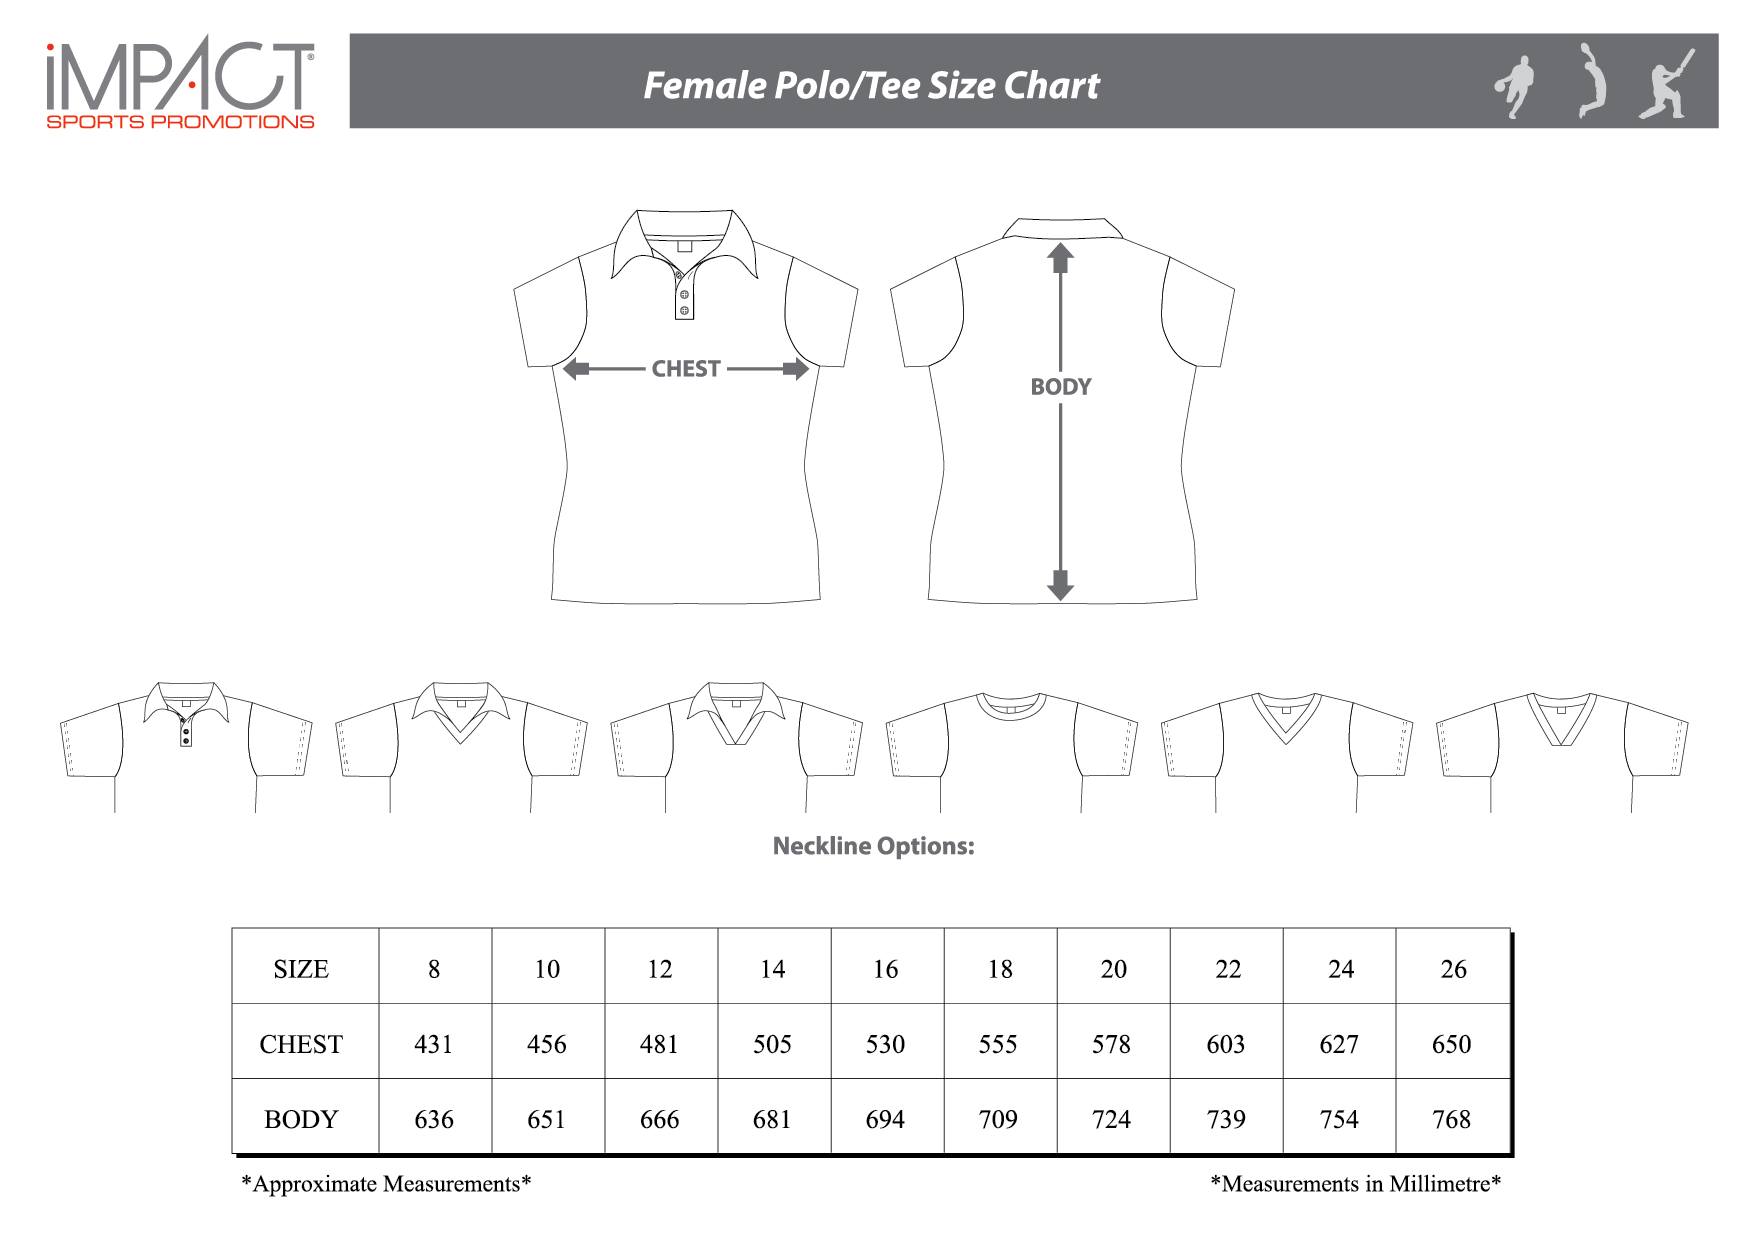 Impact SP Female Polo Tee Size Chart